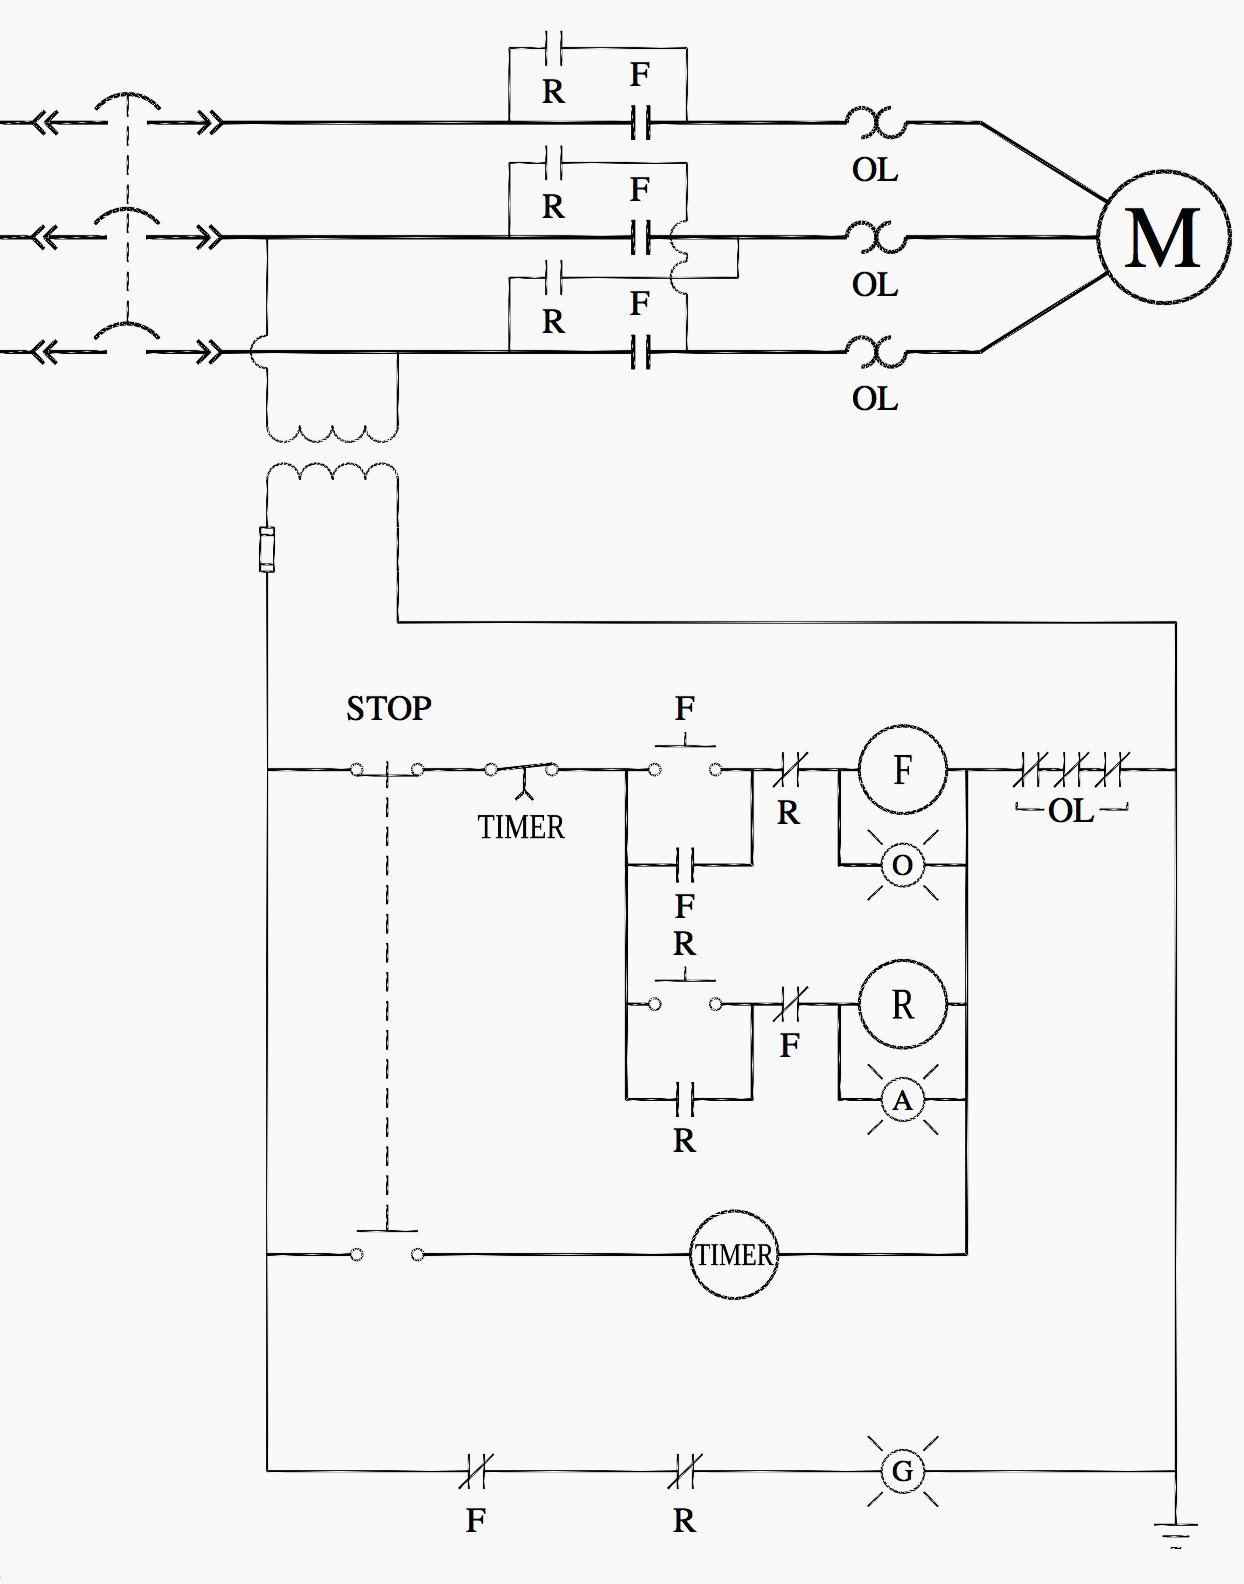 hight resolution of start stop wiring diagram motor relay ladder wiring diagram inspirationa motor starter wiring diagram start